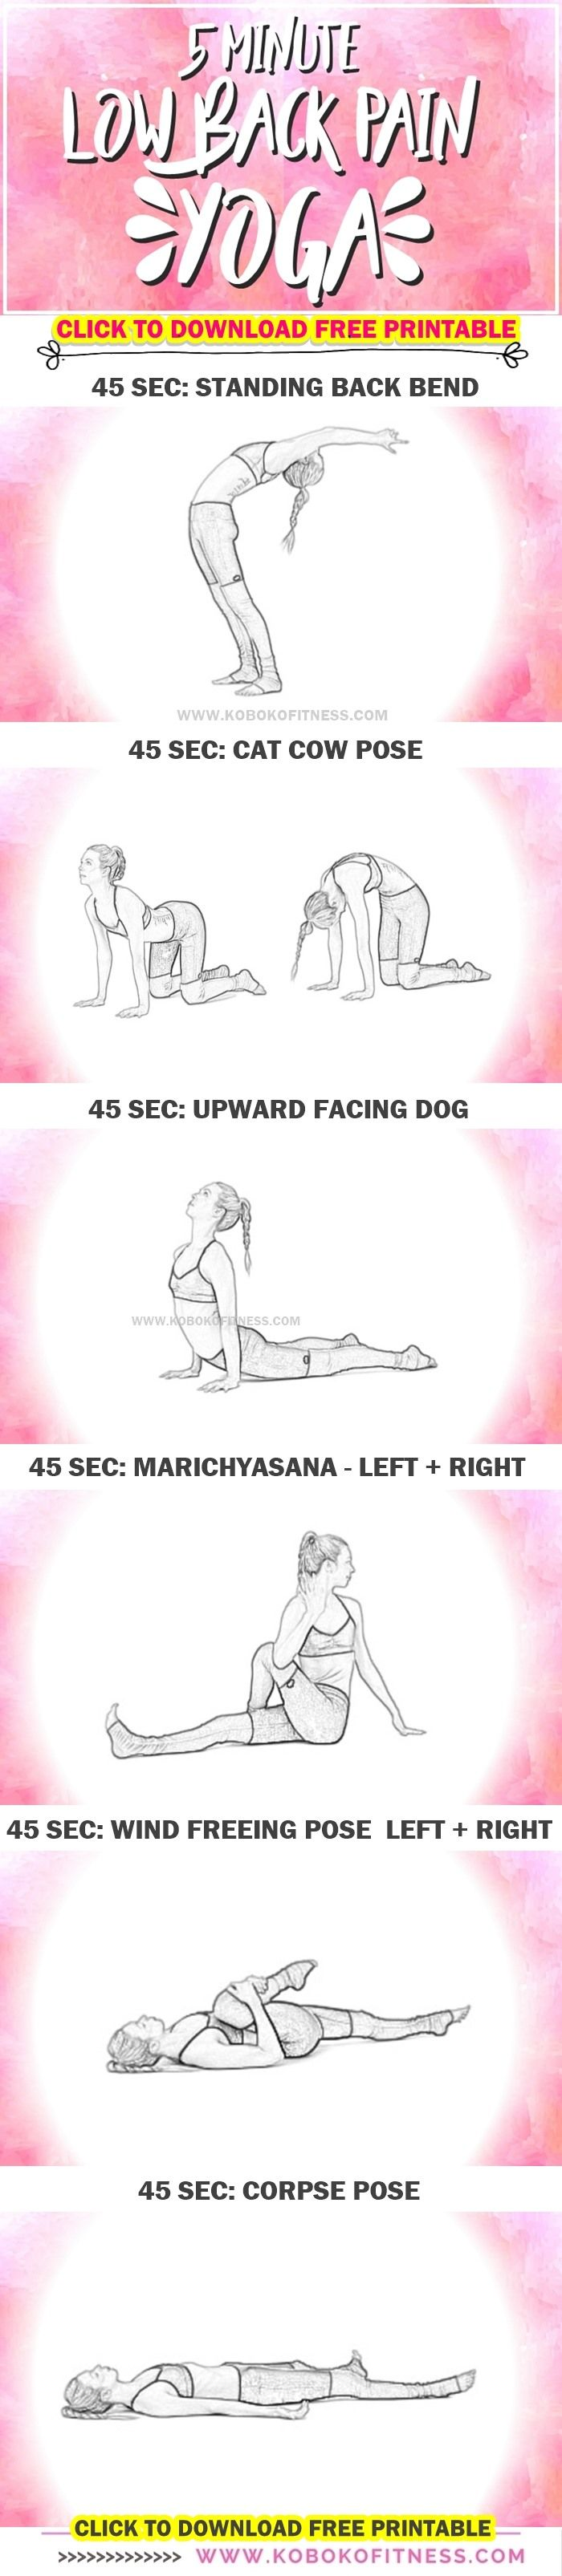 You discovered the low back pain yoga workout! Yoga for low back pain is an easy way to soothe your back at home. Beginner friendly. No equipment needed